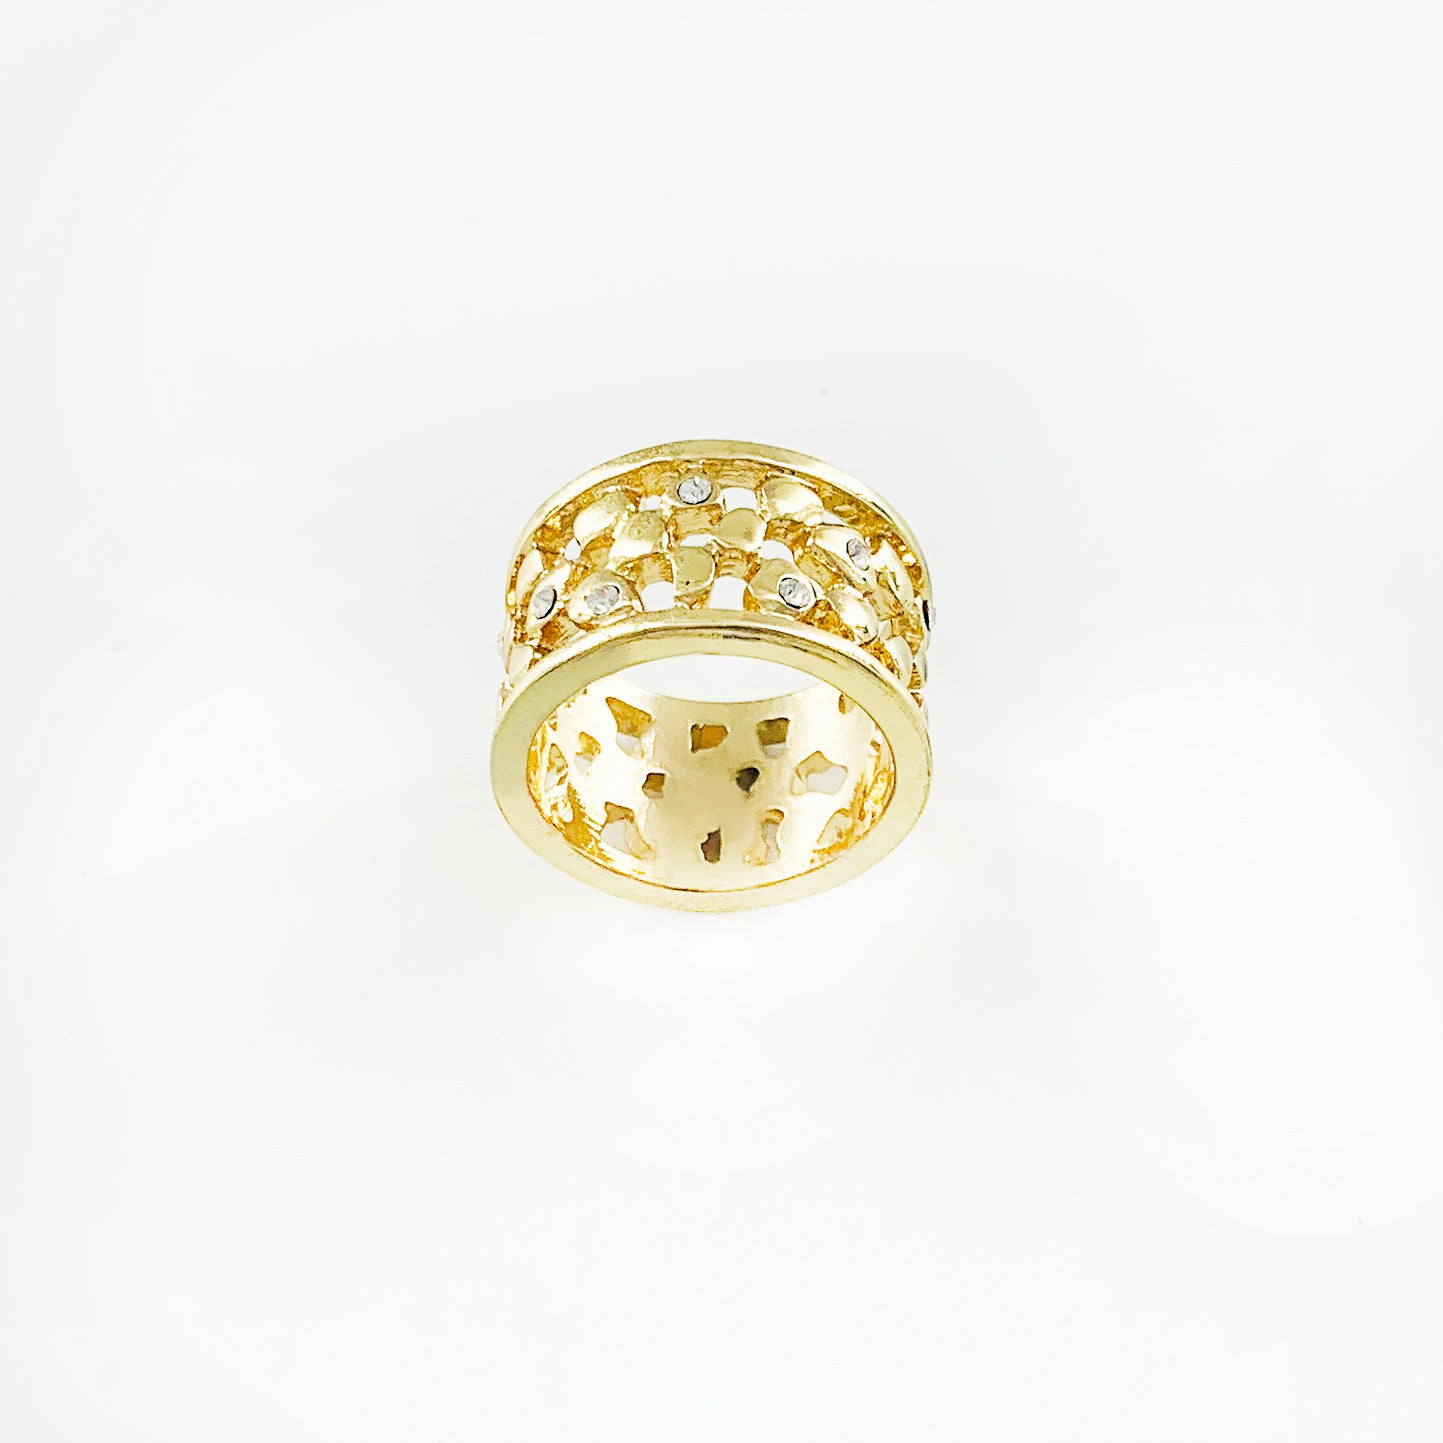 Wide gold ring with lattice design and diamante stones